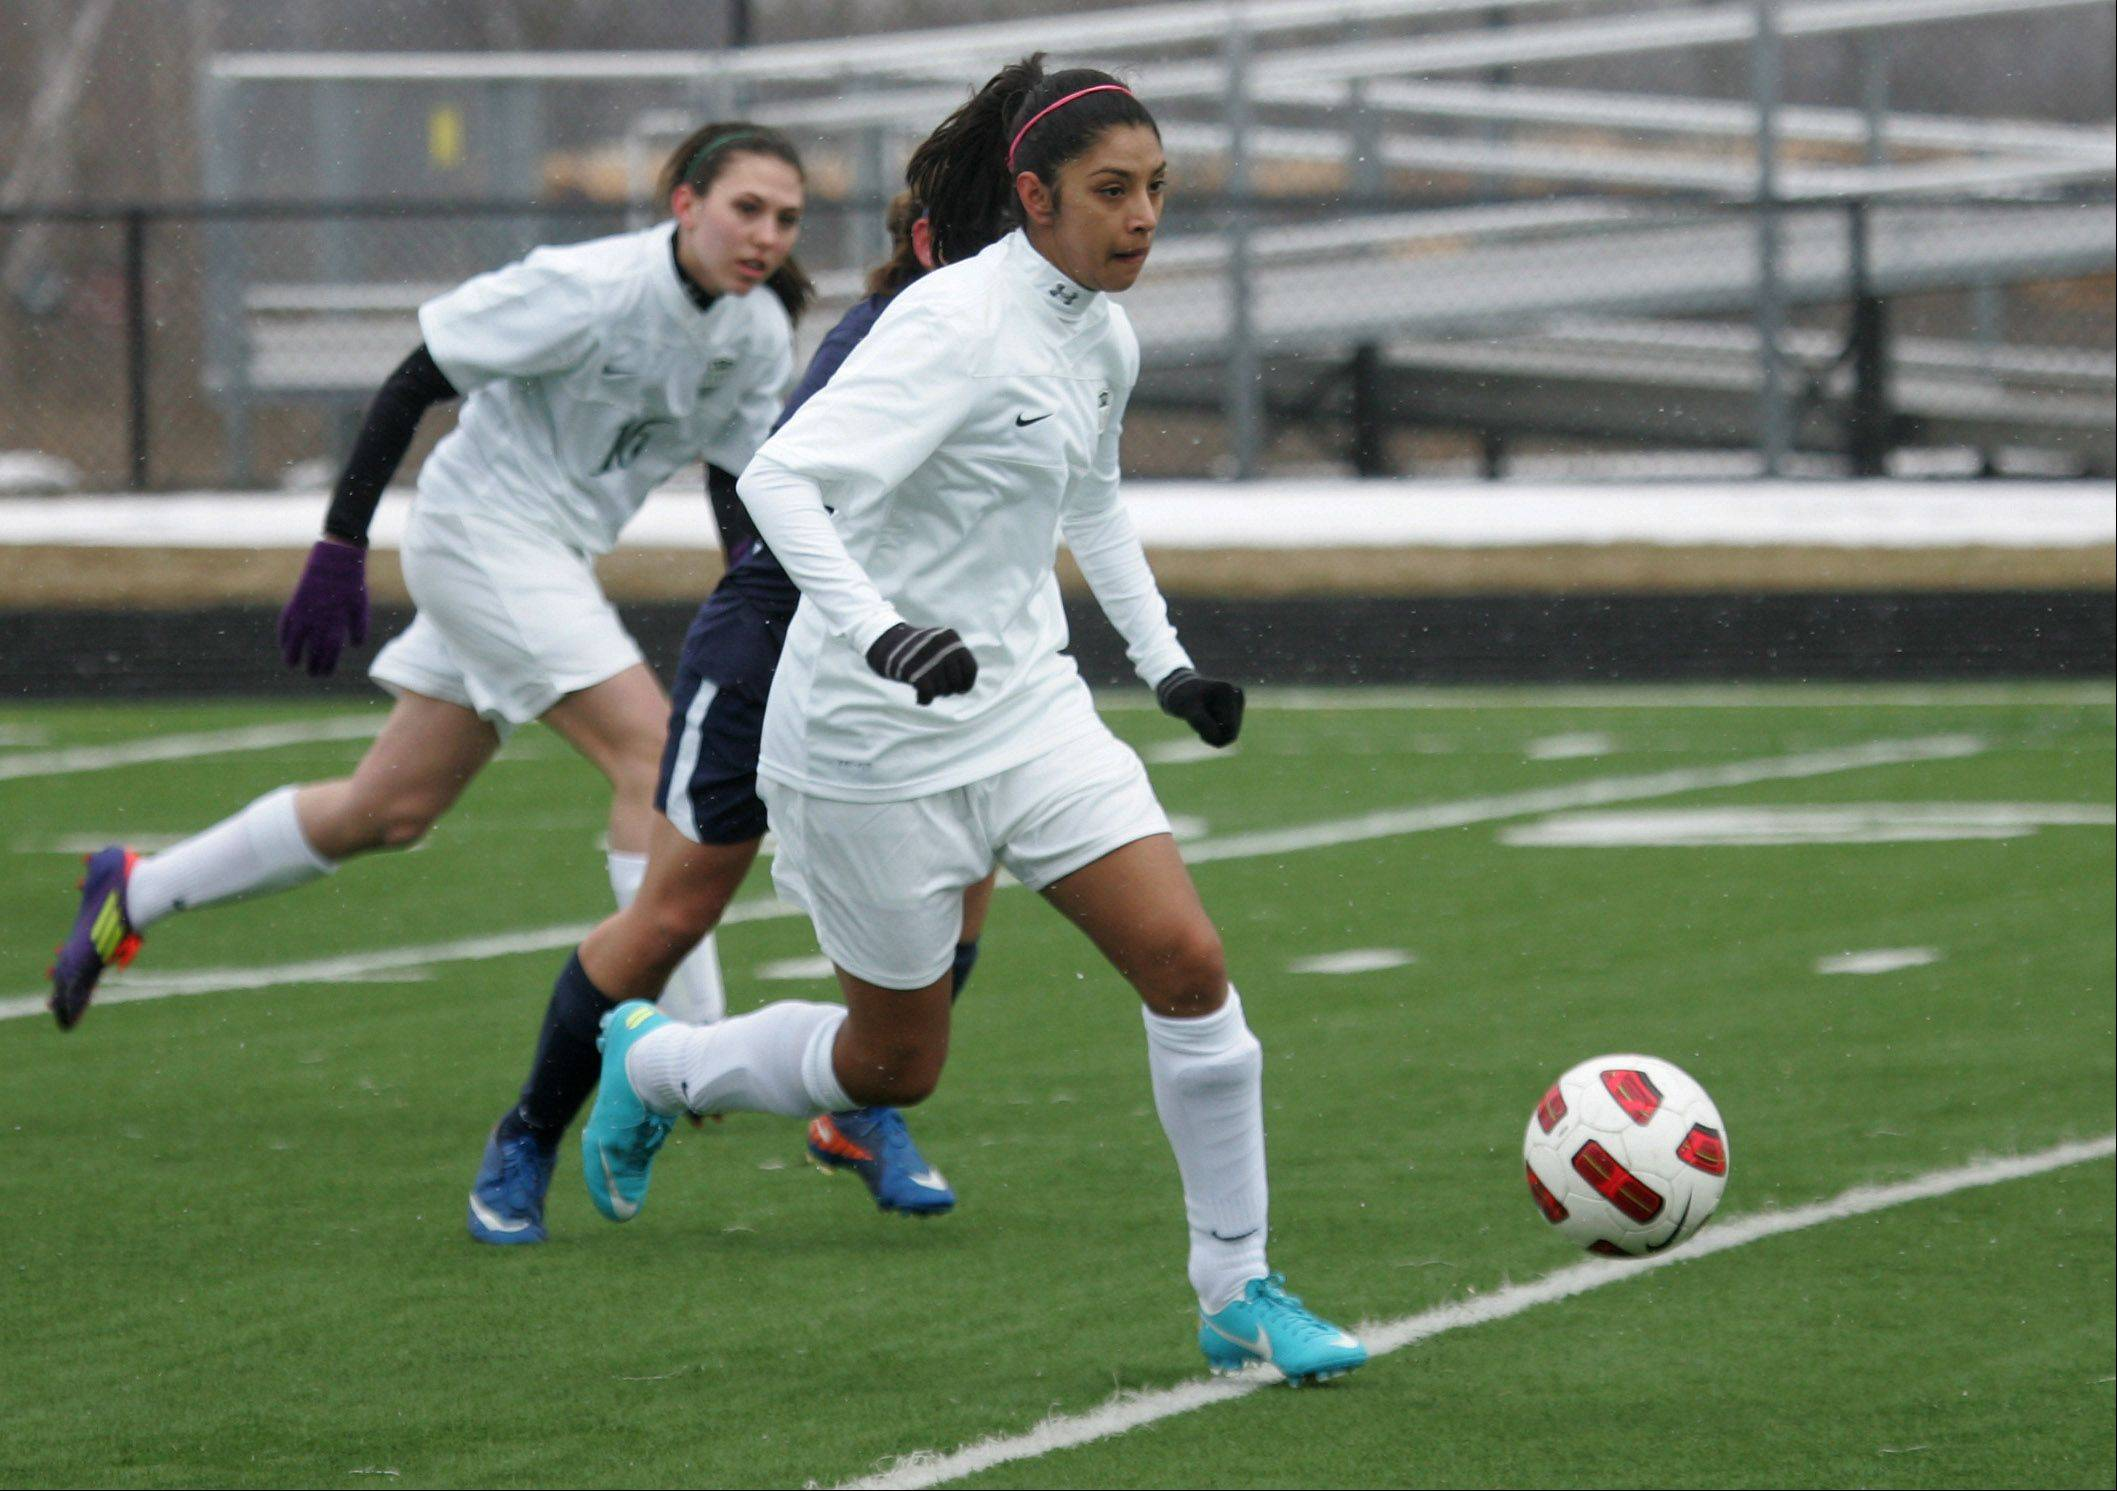 Grayslake Central midfielder Karleen Gomez make a downfield run in the first half during Monday against Round Lake at Grayslake North.